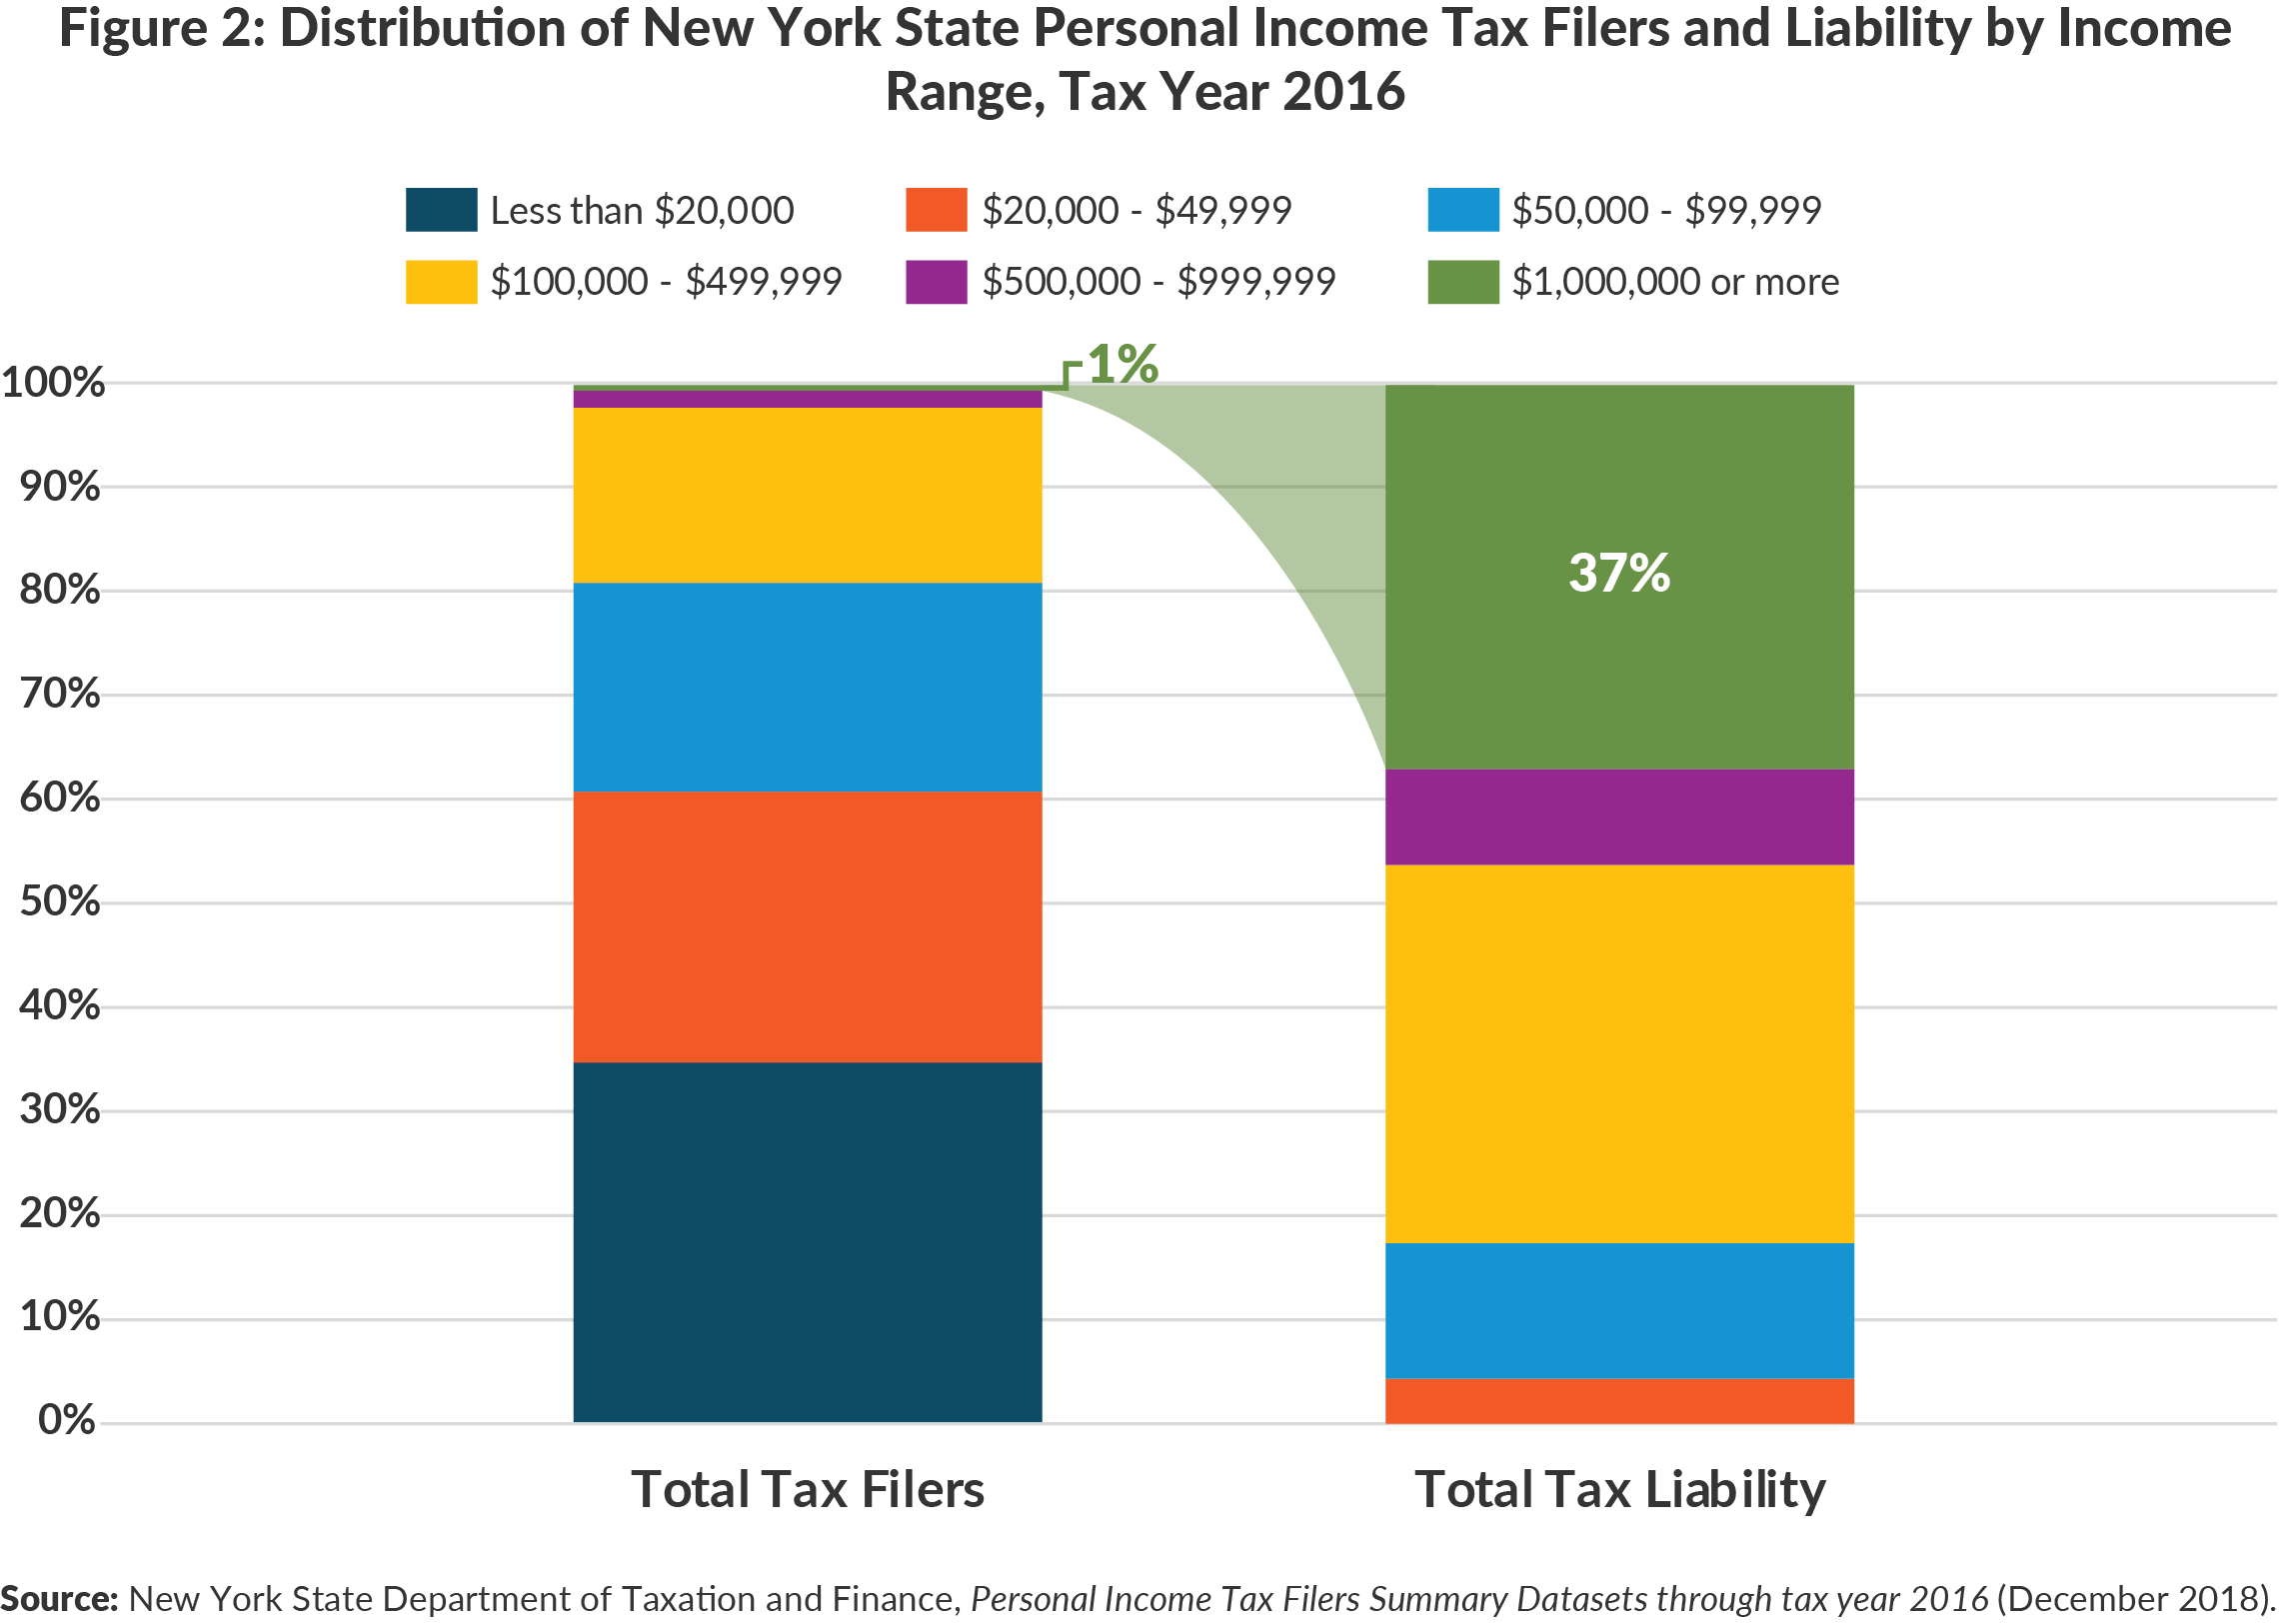 Figure 2: Distribution of New York State Personal Income Tax Filers and Liability by IncomeRange, Tax Year 2016